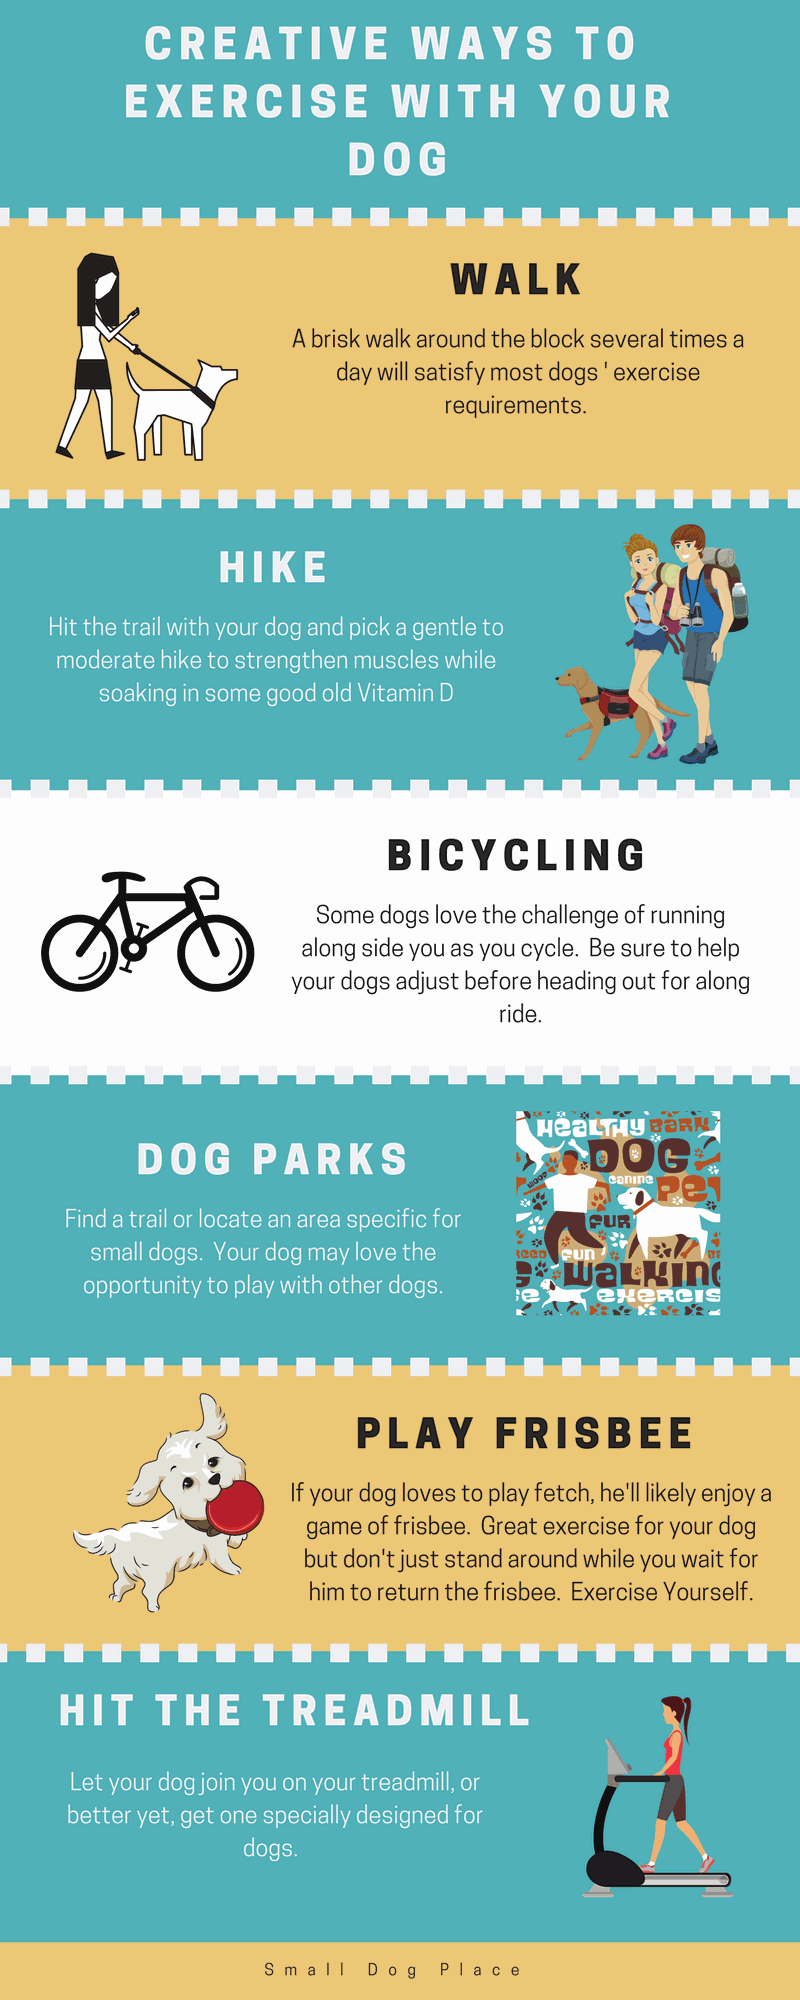 Creative Ways to Exercise Your Dog Infographic